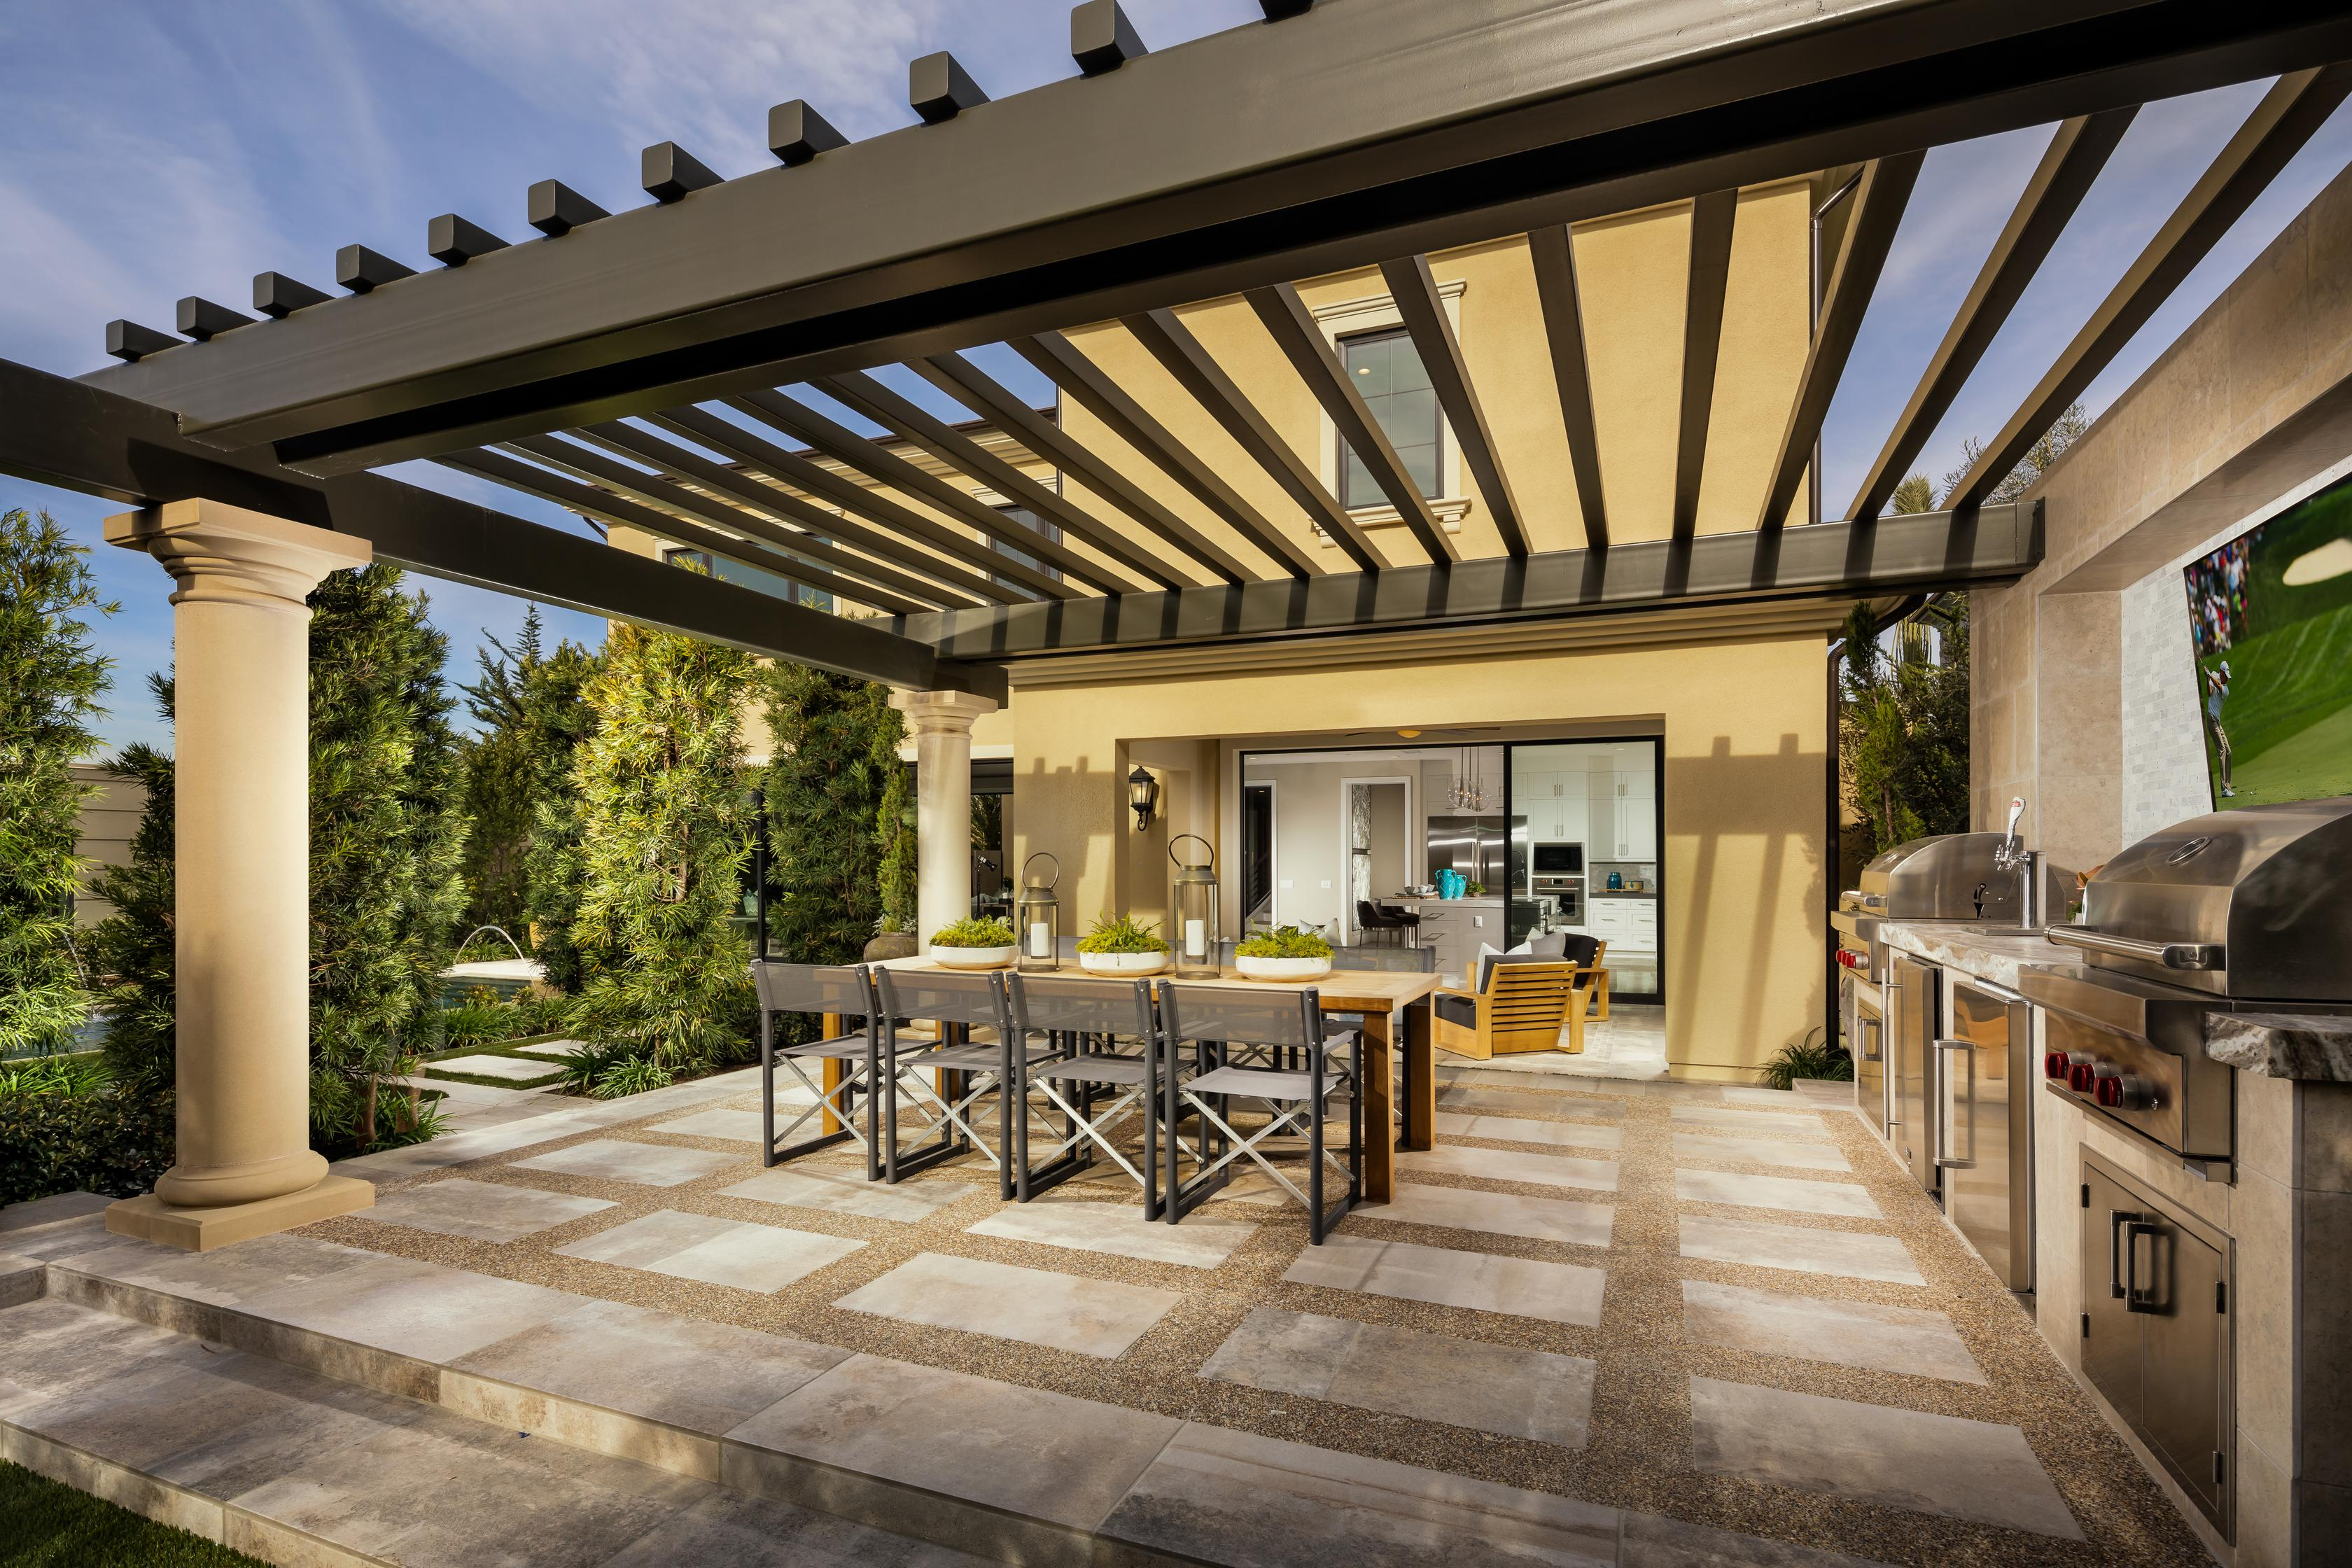 Outdoor living area with grill and a table with seating.